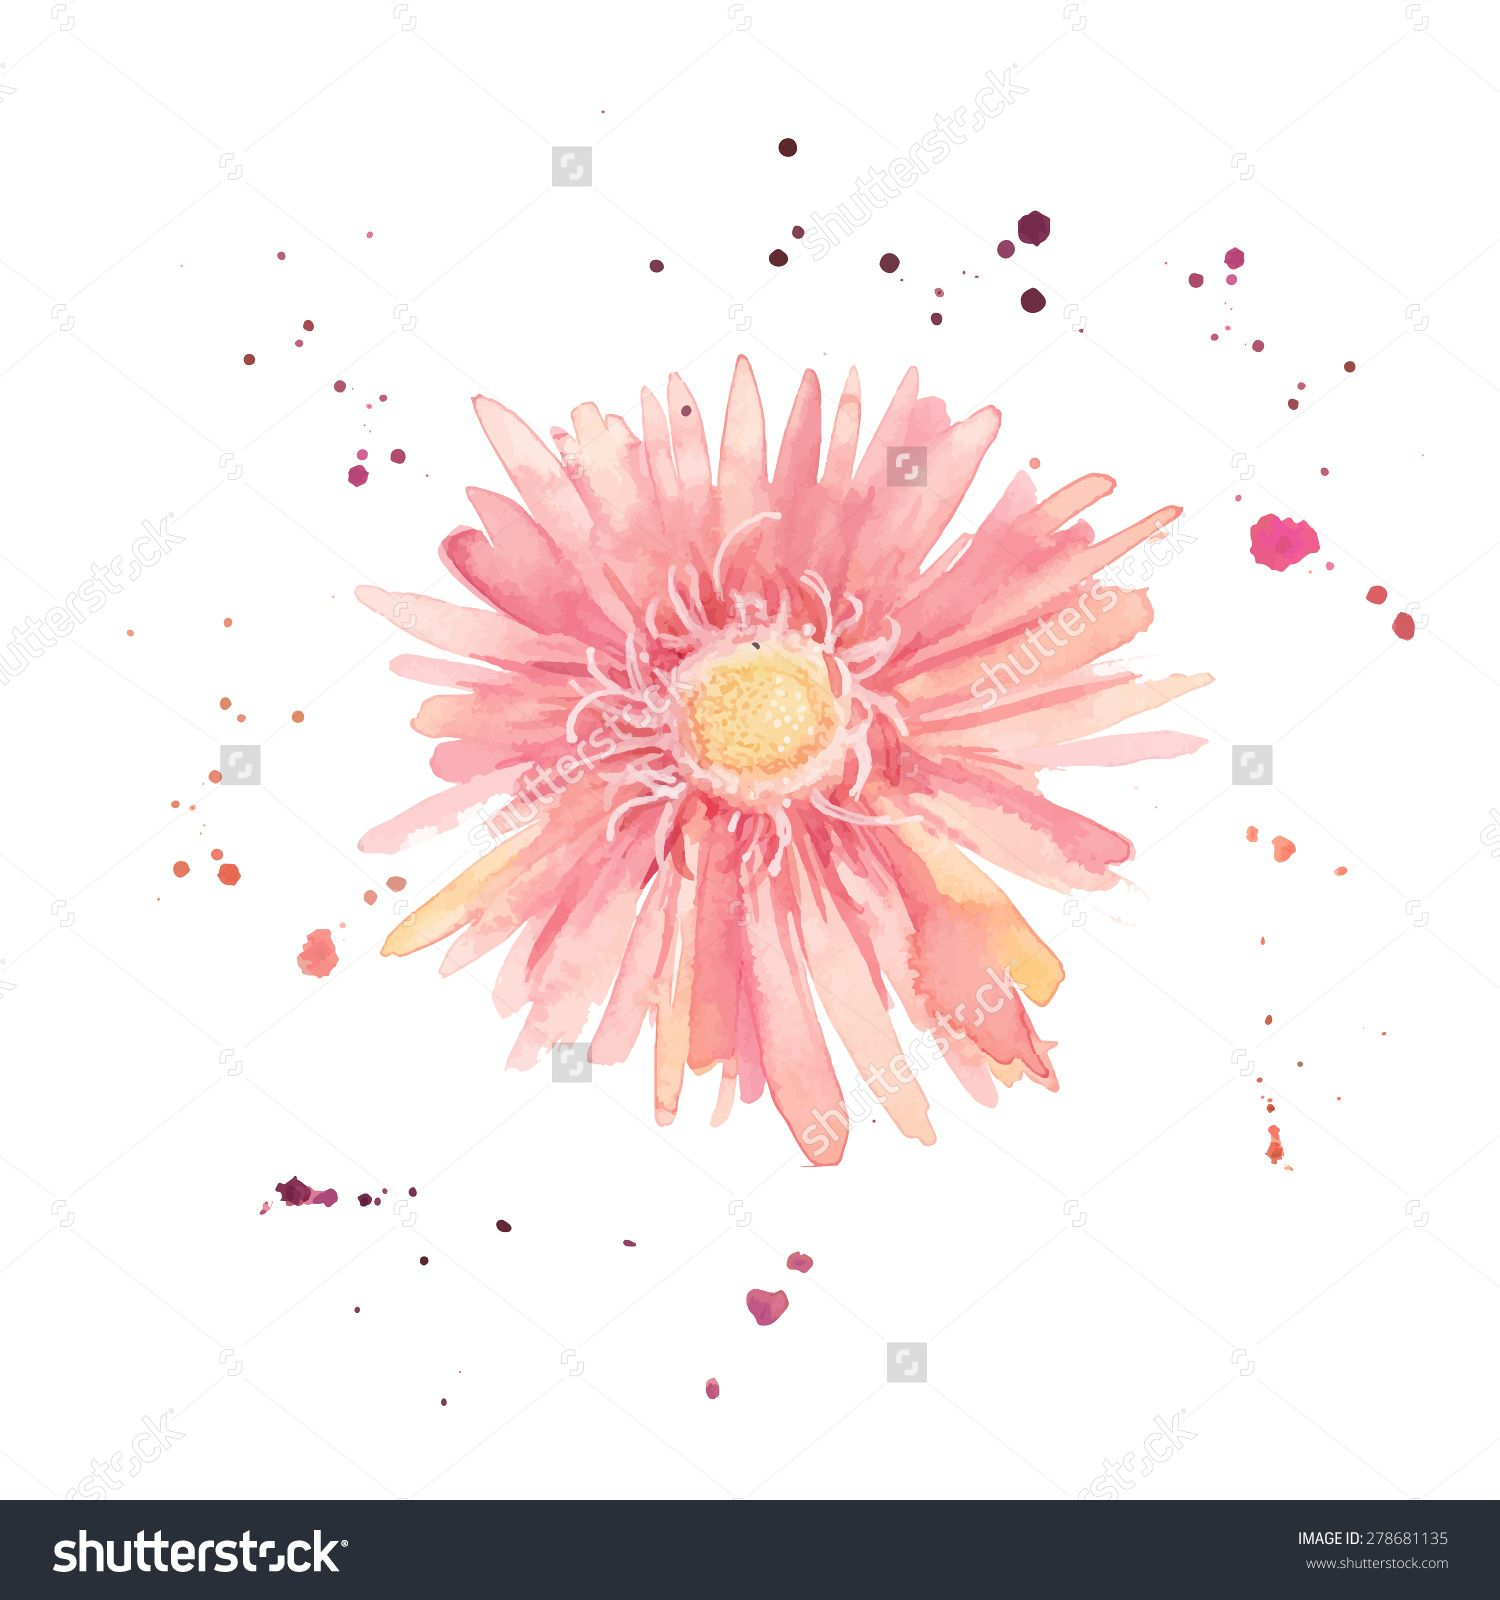 Watercolor Gerbera Single Flower With Paint Drops And Dots Hand Drawn Vector Botany Illustration